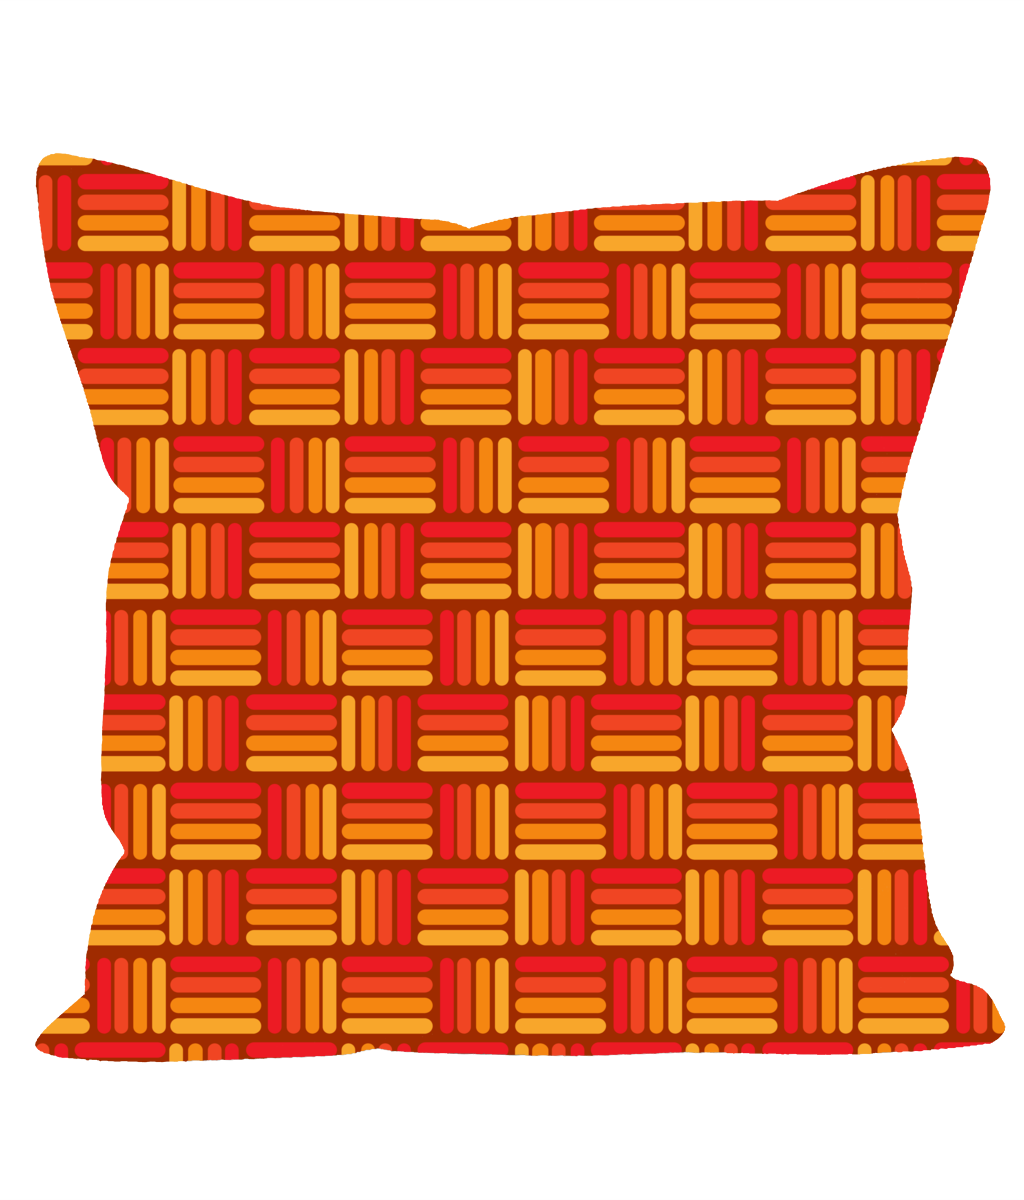 Retro Vintage Throw Cushion in an Orange and Yellow Weave effect Pattern.